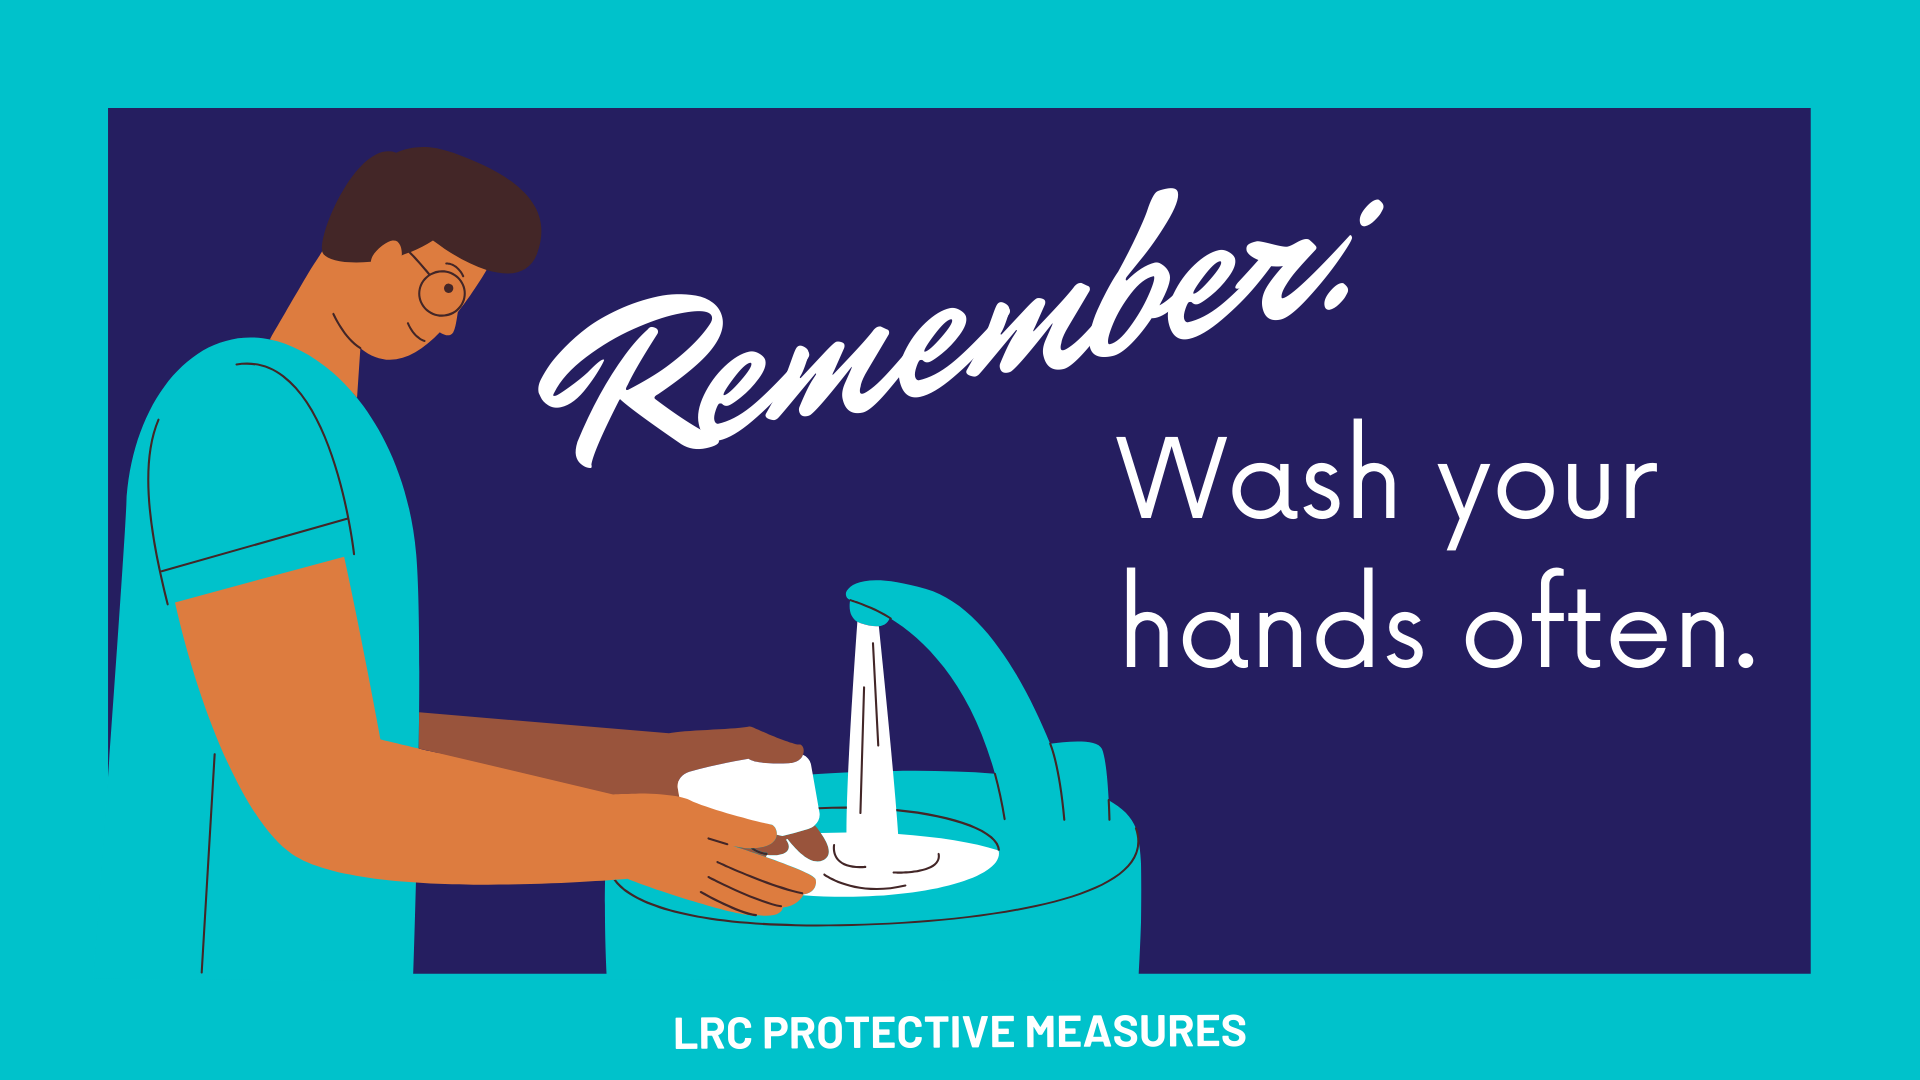 Remember to wash your hands often